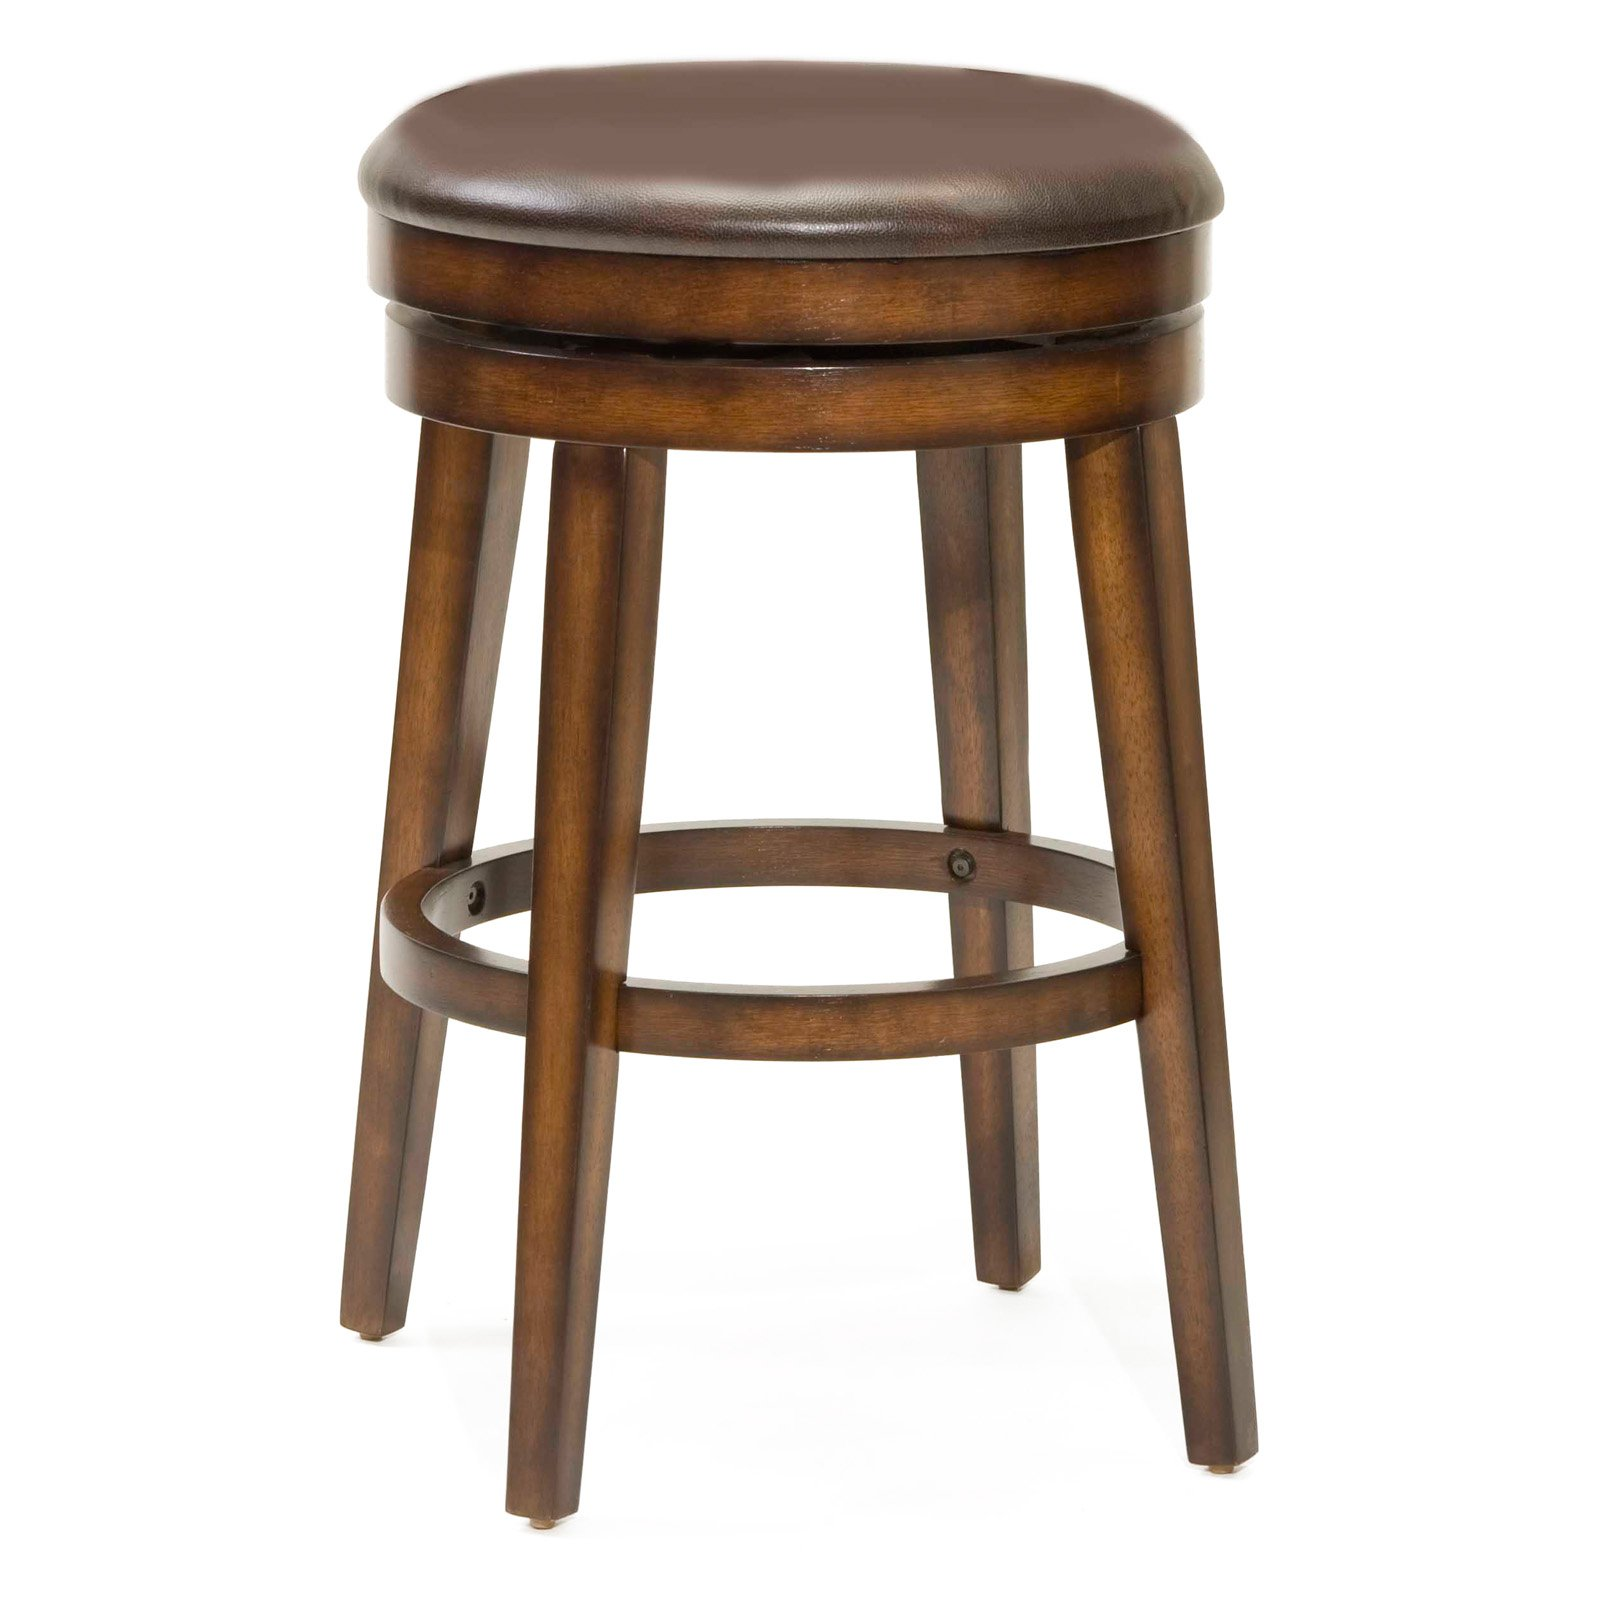 Brilliant Hillsdale Beechland 30 5 In Backless Swivel Bar Stool Walmart Com Unemploymentrelief Wooden Chair Designs For Living Room Unemploymentrelieforg